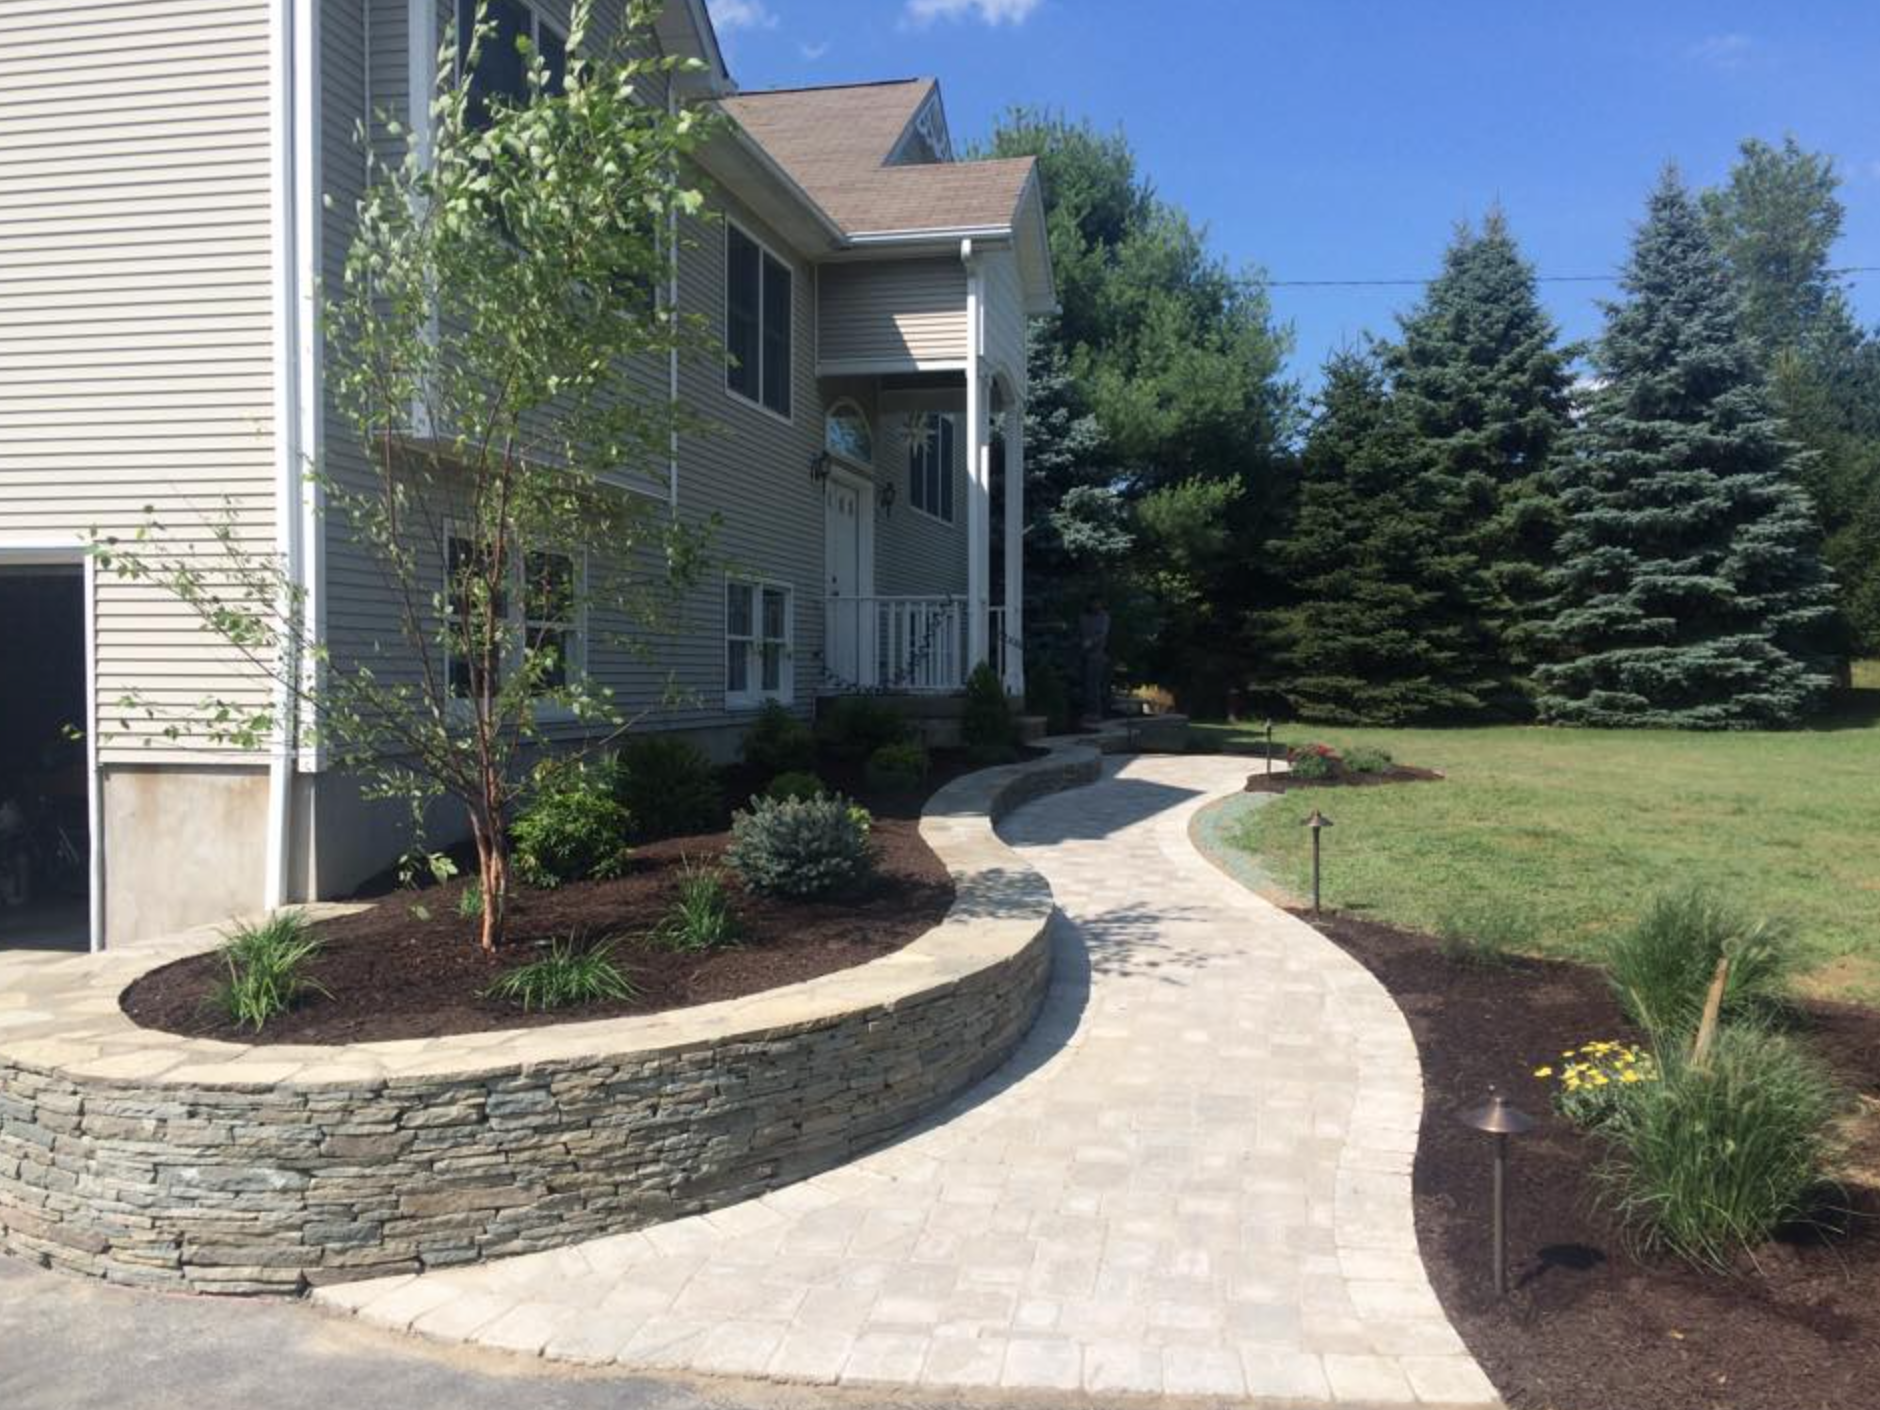 Landscaping ideas in Monroe, New York for walkway and retaining wall